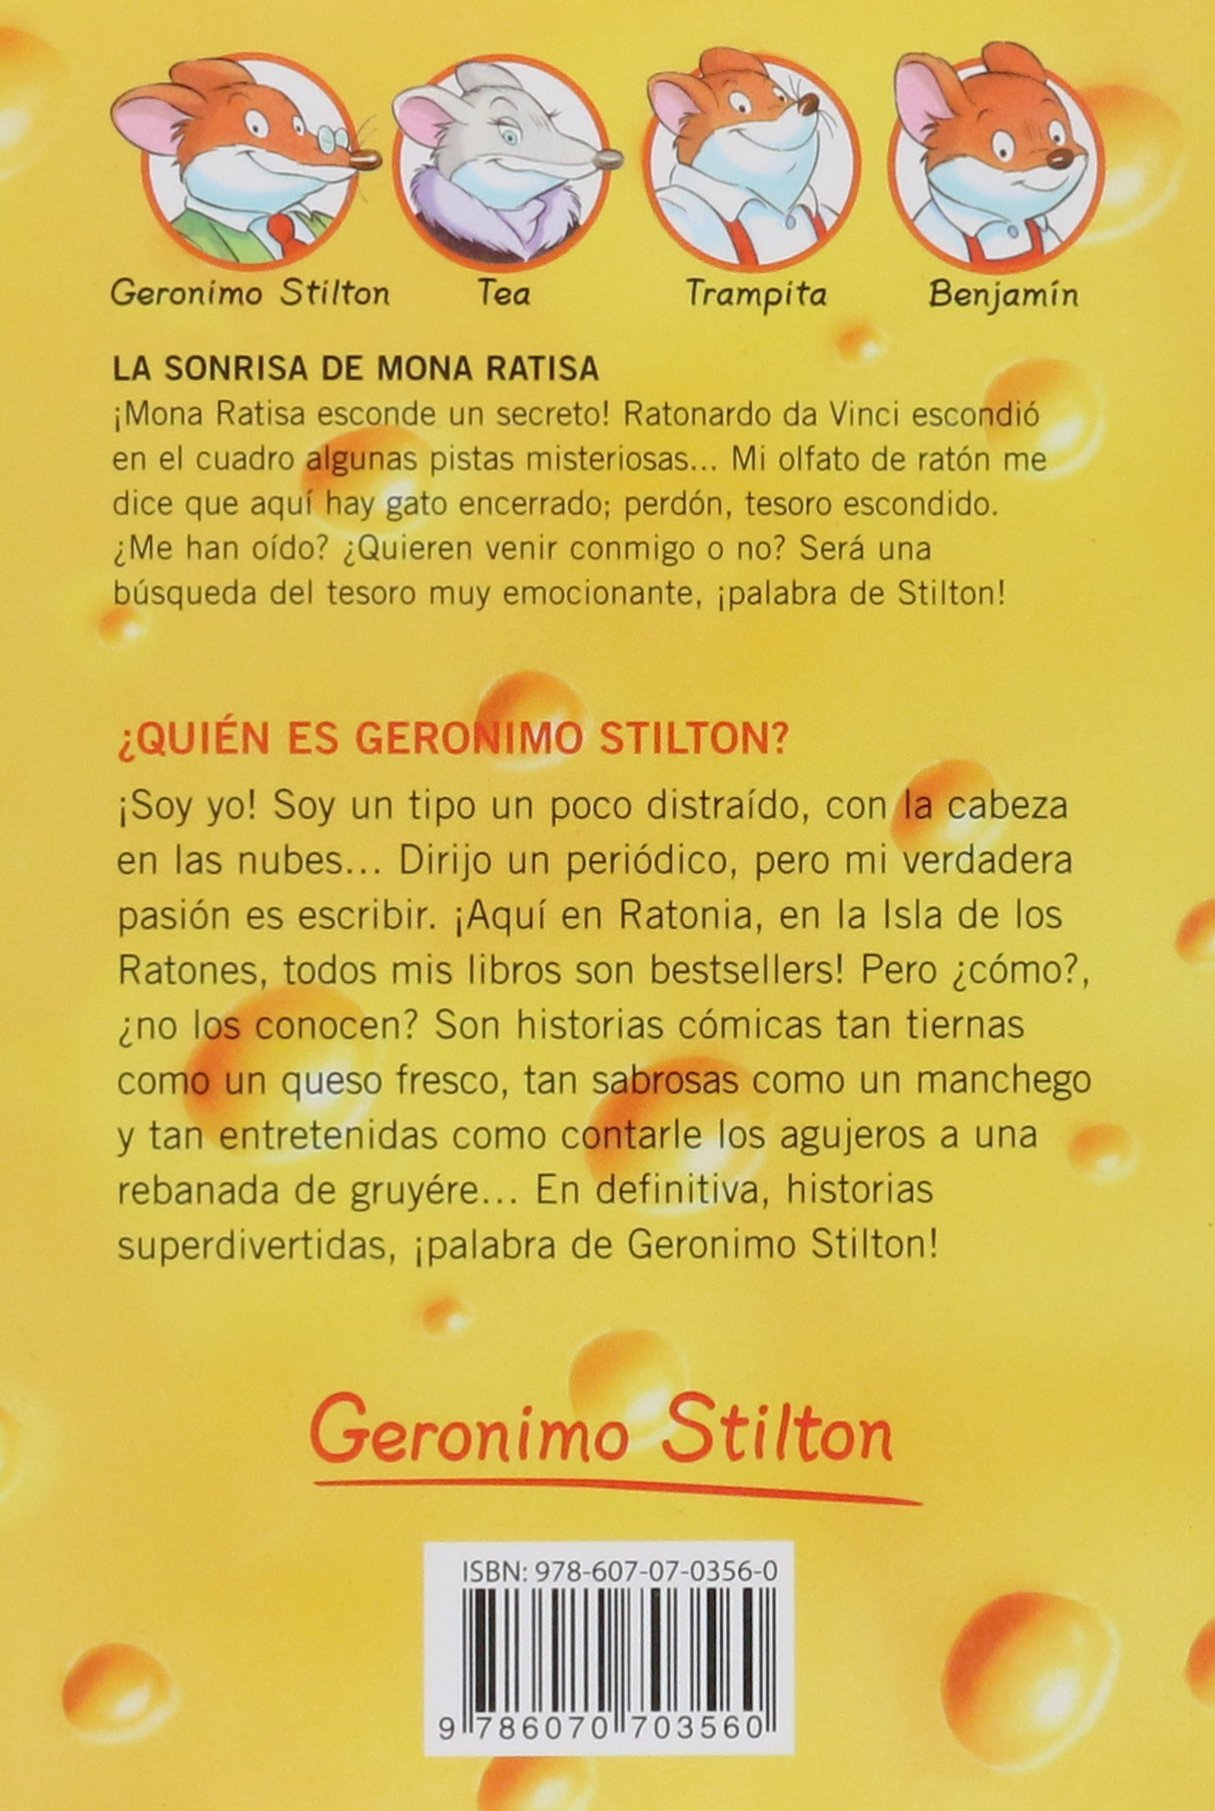 La Sonrisa de Mona Ratisa (Spanish Edition): Geronimo Stilton: 9786070703560: Amazon.com: Books